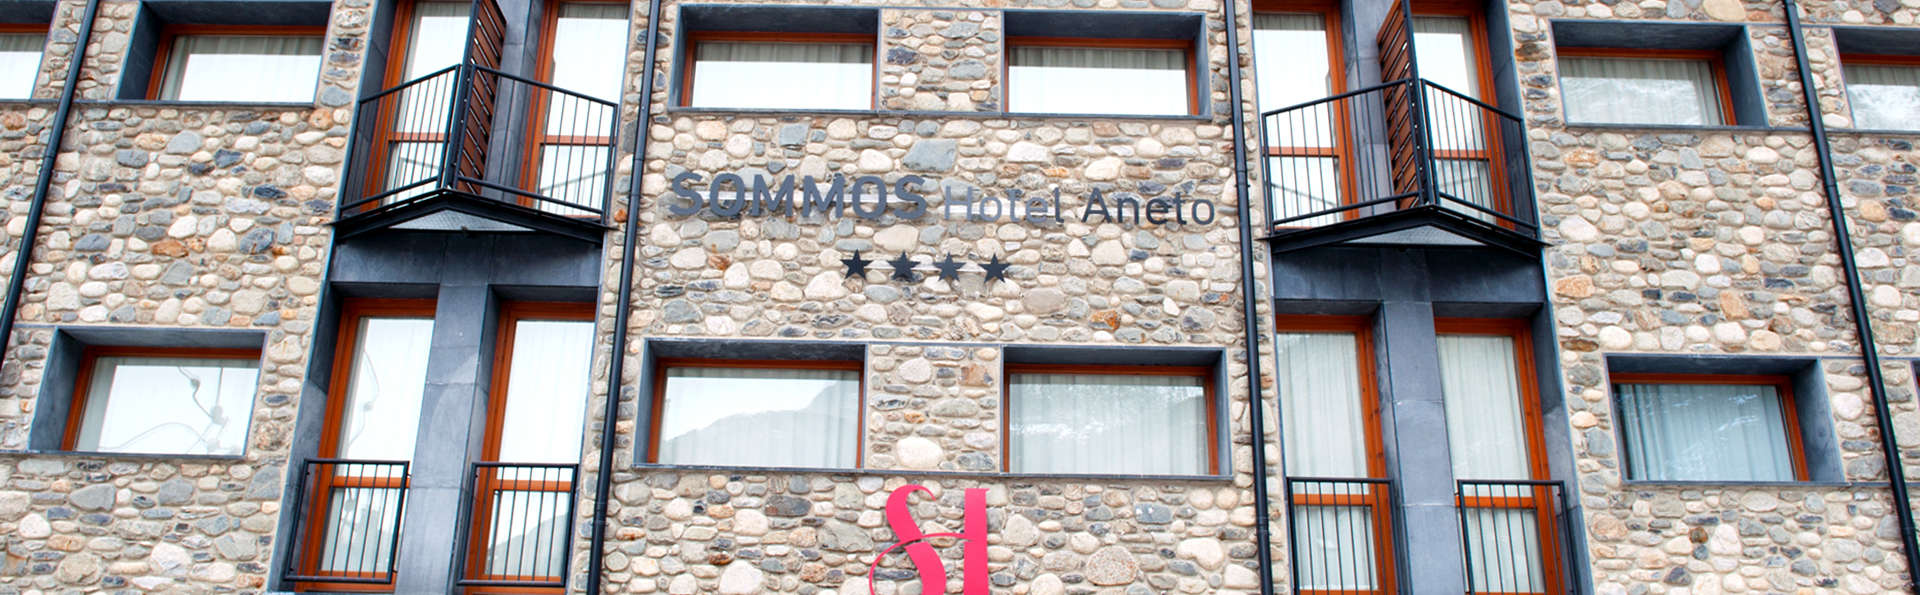 SOMMOS Hotel Aneto - EDIT_NEW_FRONT.jpg